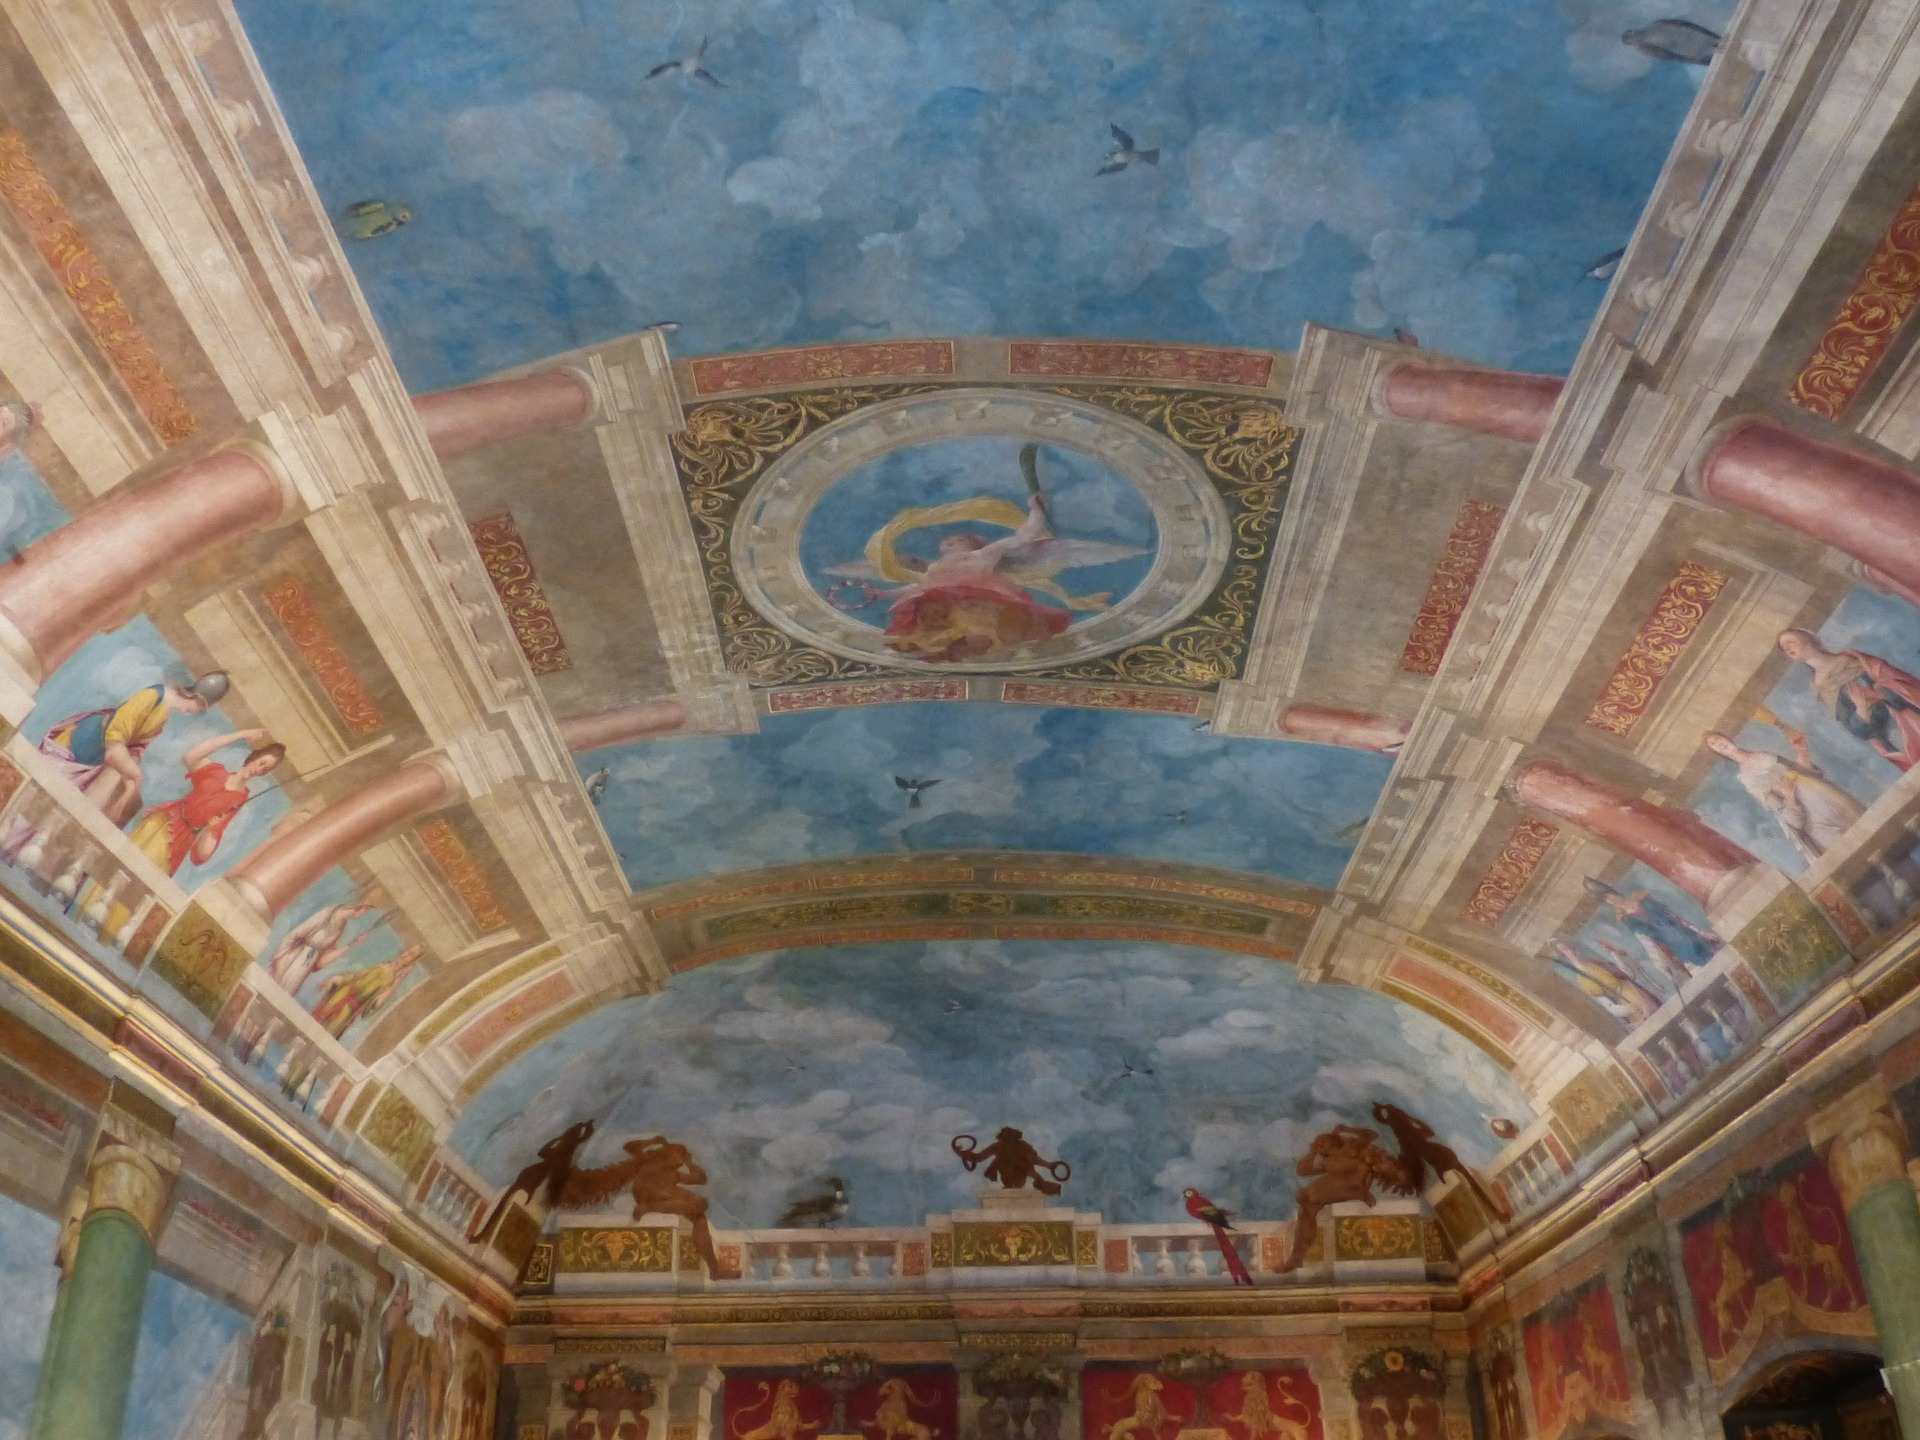 blue-cathedral-ceiling-117530_1920.jpg